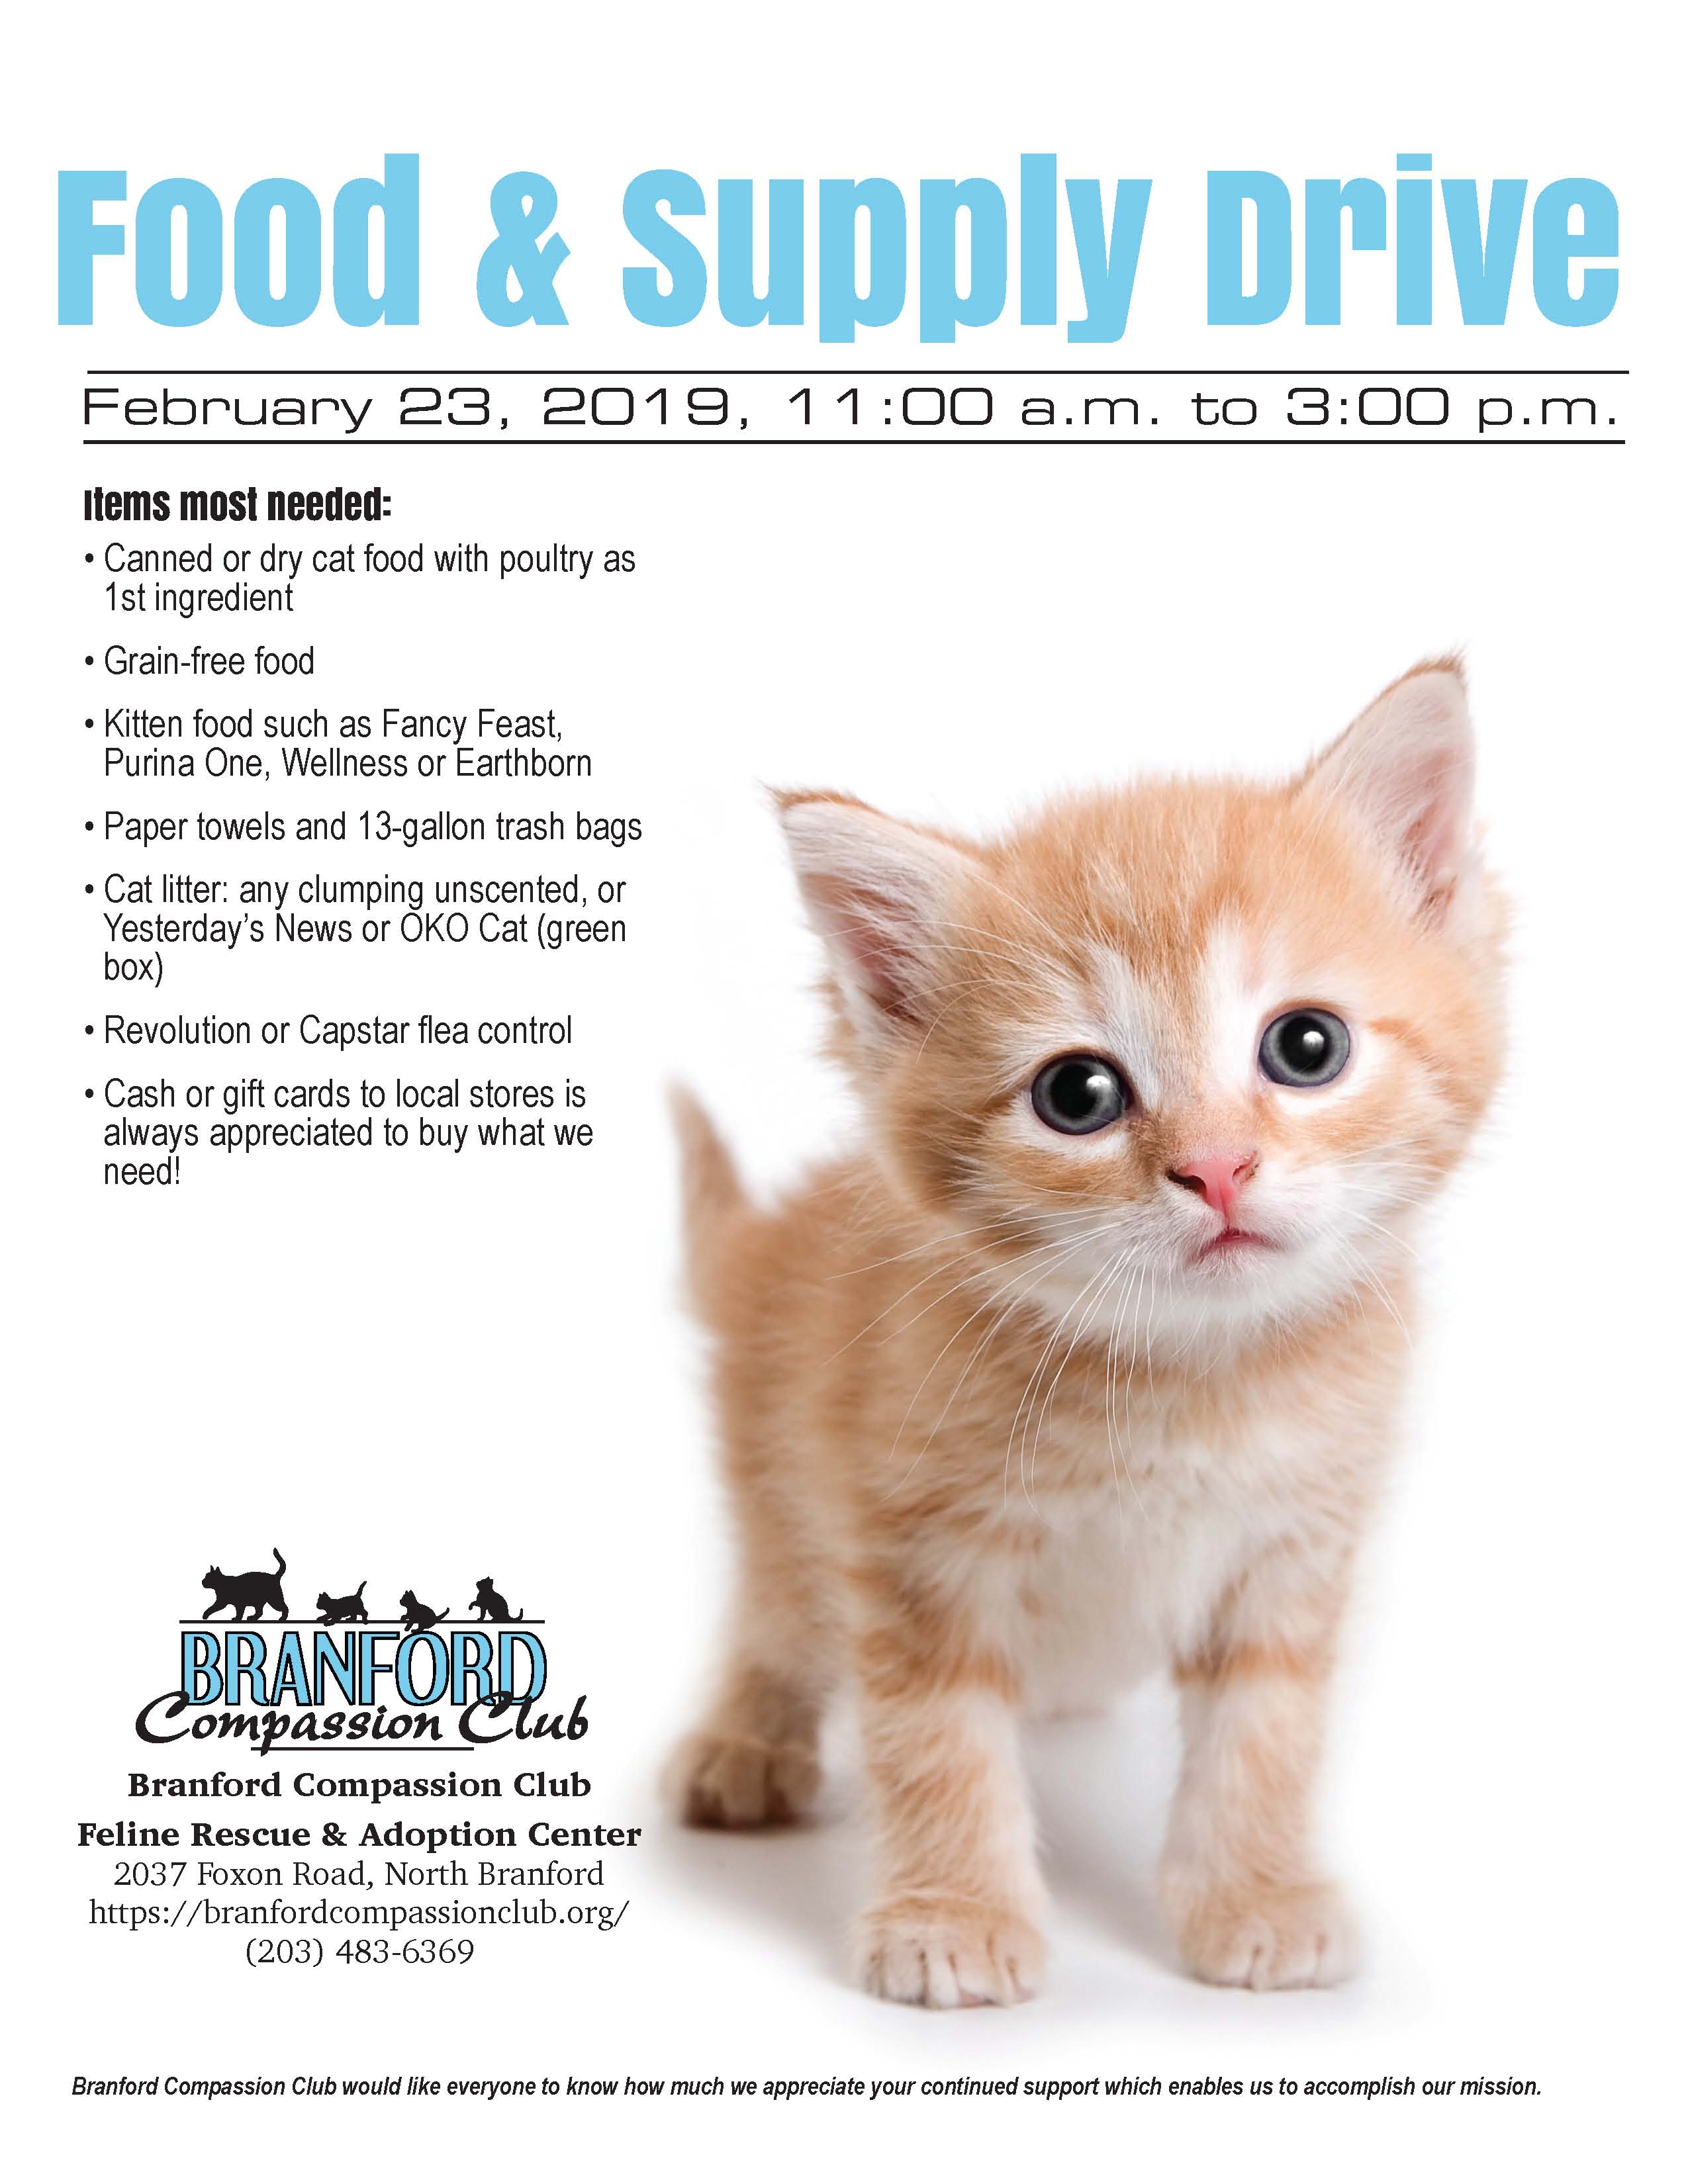 BCC 2019 Food & Supply drive